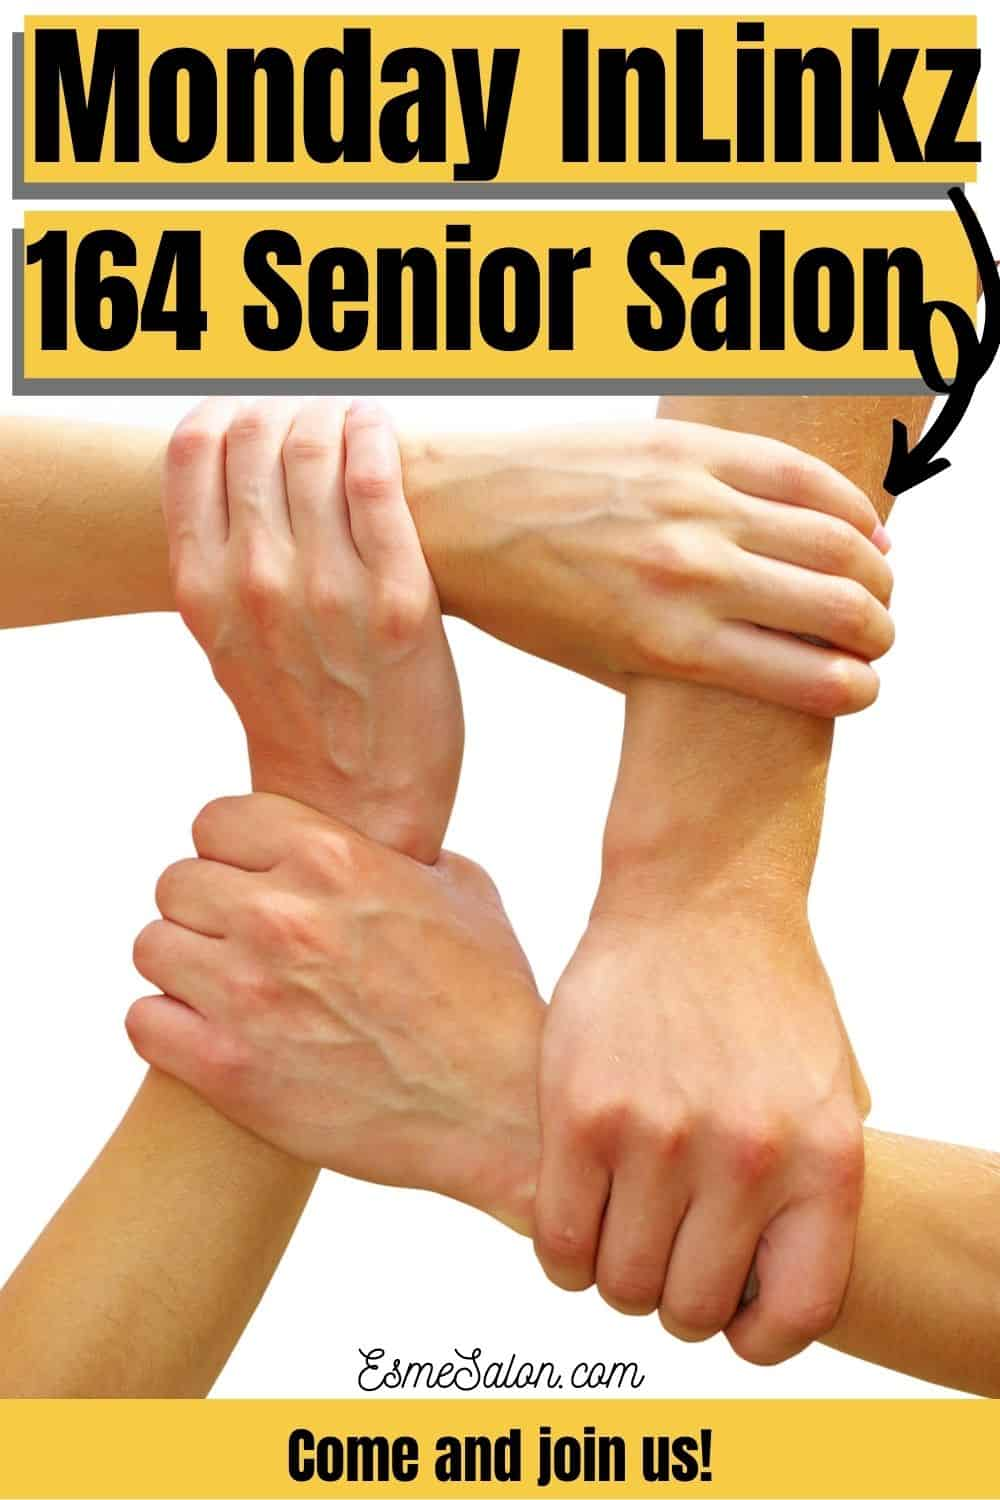 4 hands forming a link InLinkz Join us at 164 Senior Salon